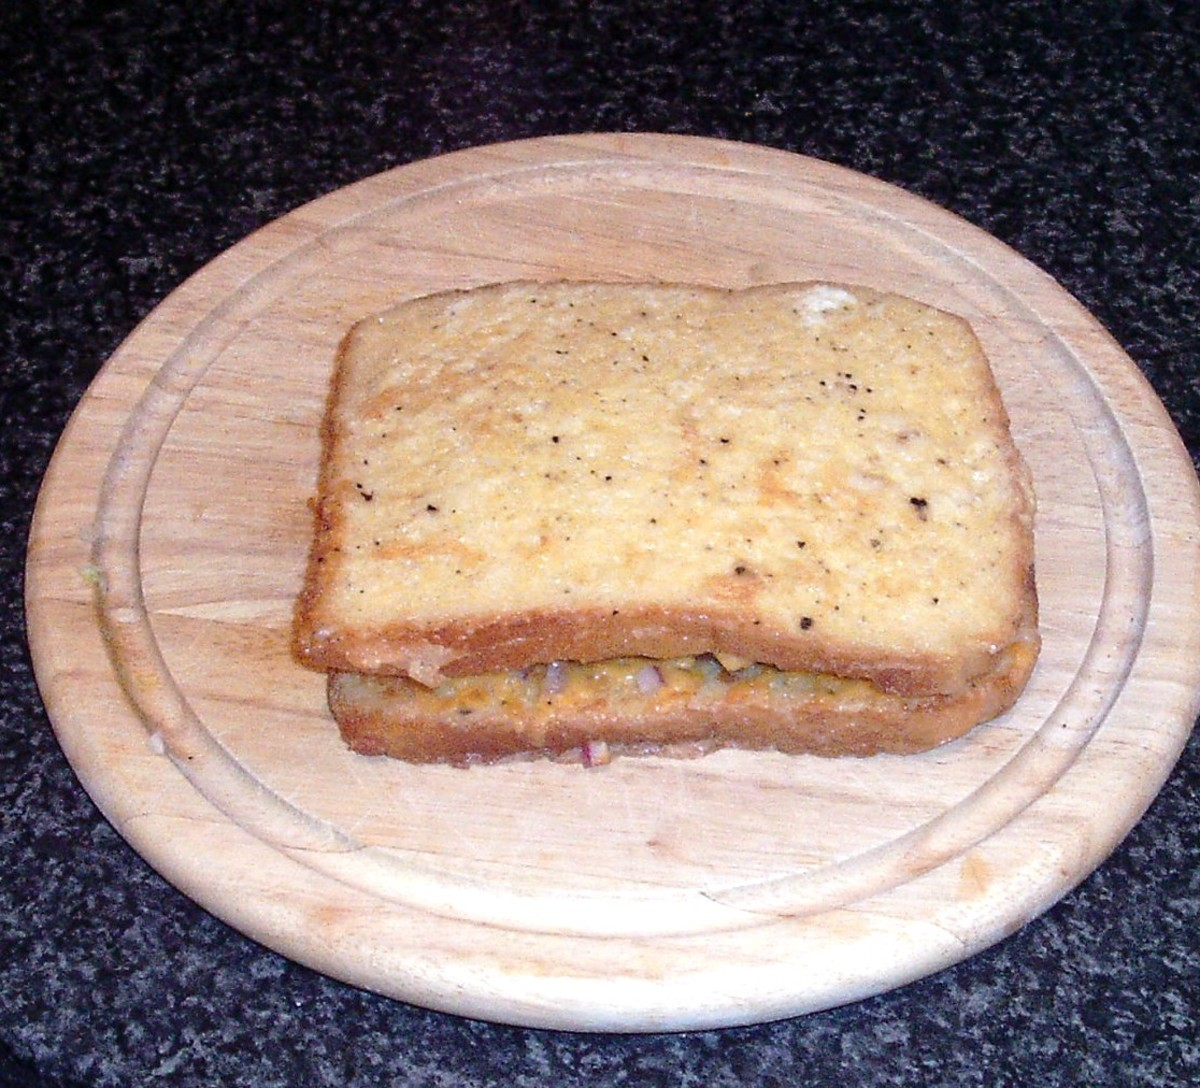 Second slice of eggy bread tops sandwich